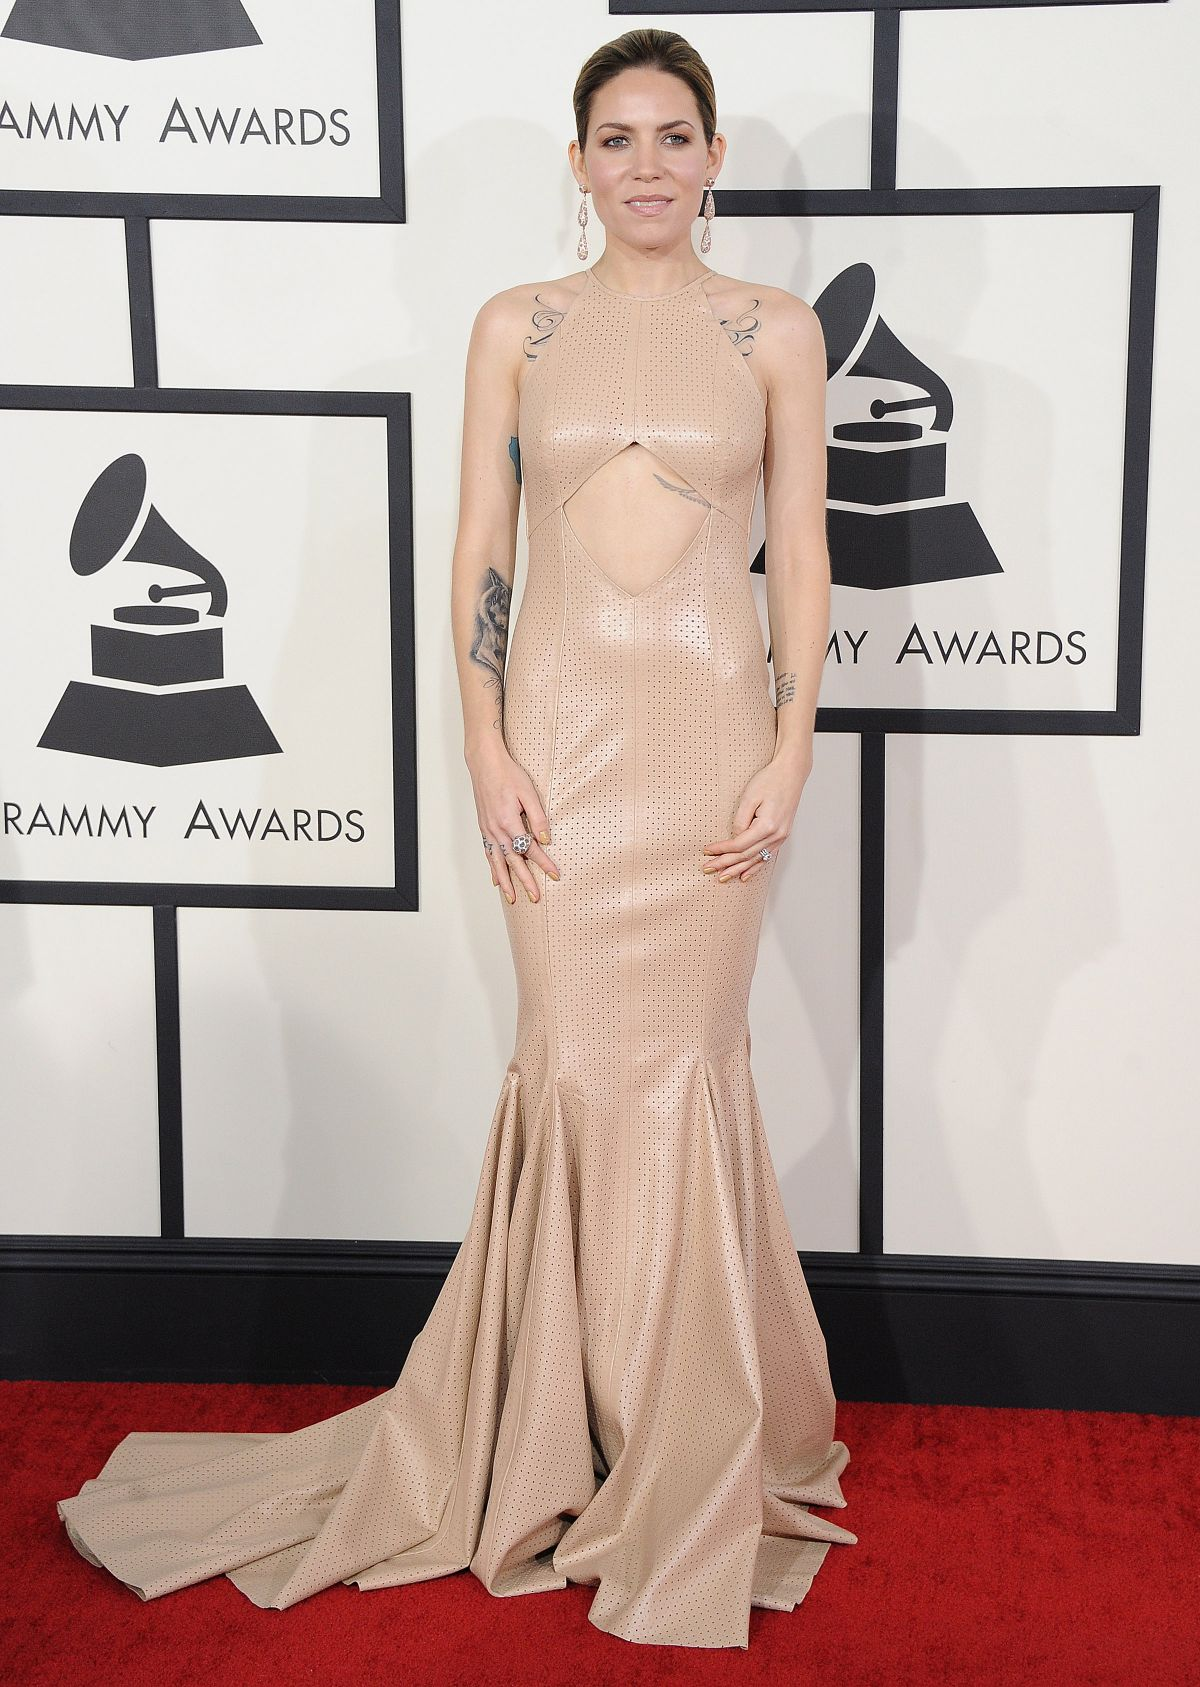 SKYLAR GREY at 2014 Grammy Awards in Los Angeles